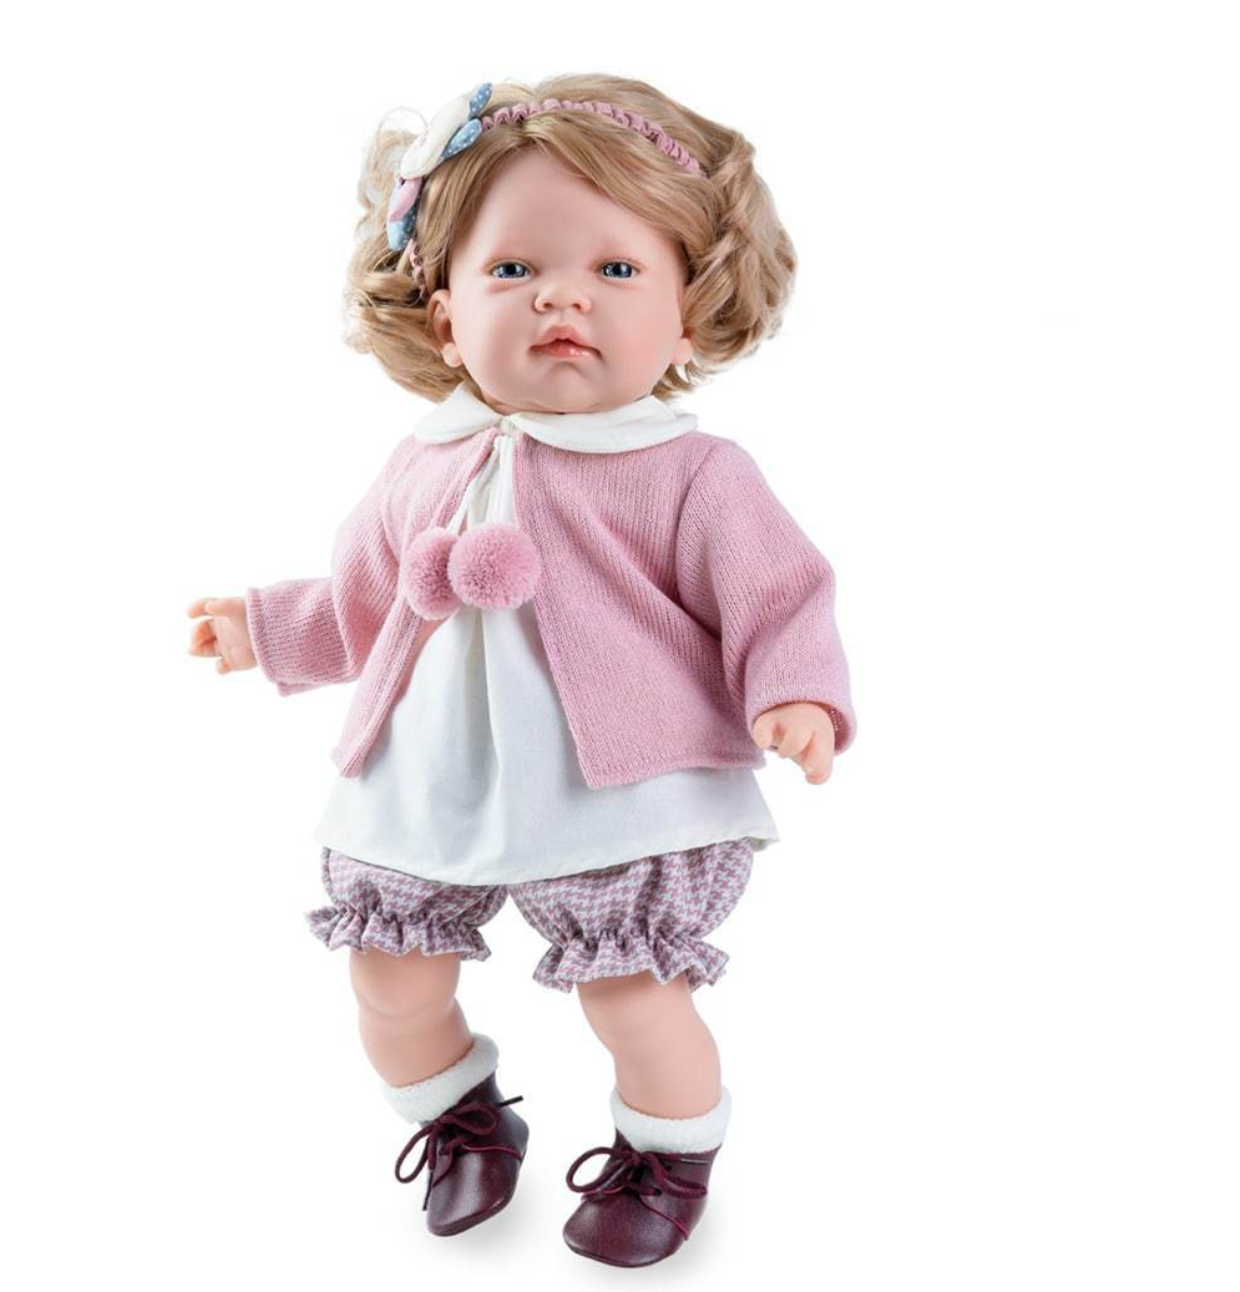 D'Nines Spanish Doll - Celia #spanishdolls Our super cute Spanish Doll - Celia- is looking for her forever home. At 45cm tall,she is the perfect keepsake. #spanishdolls